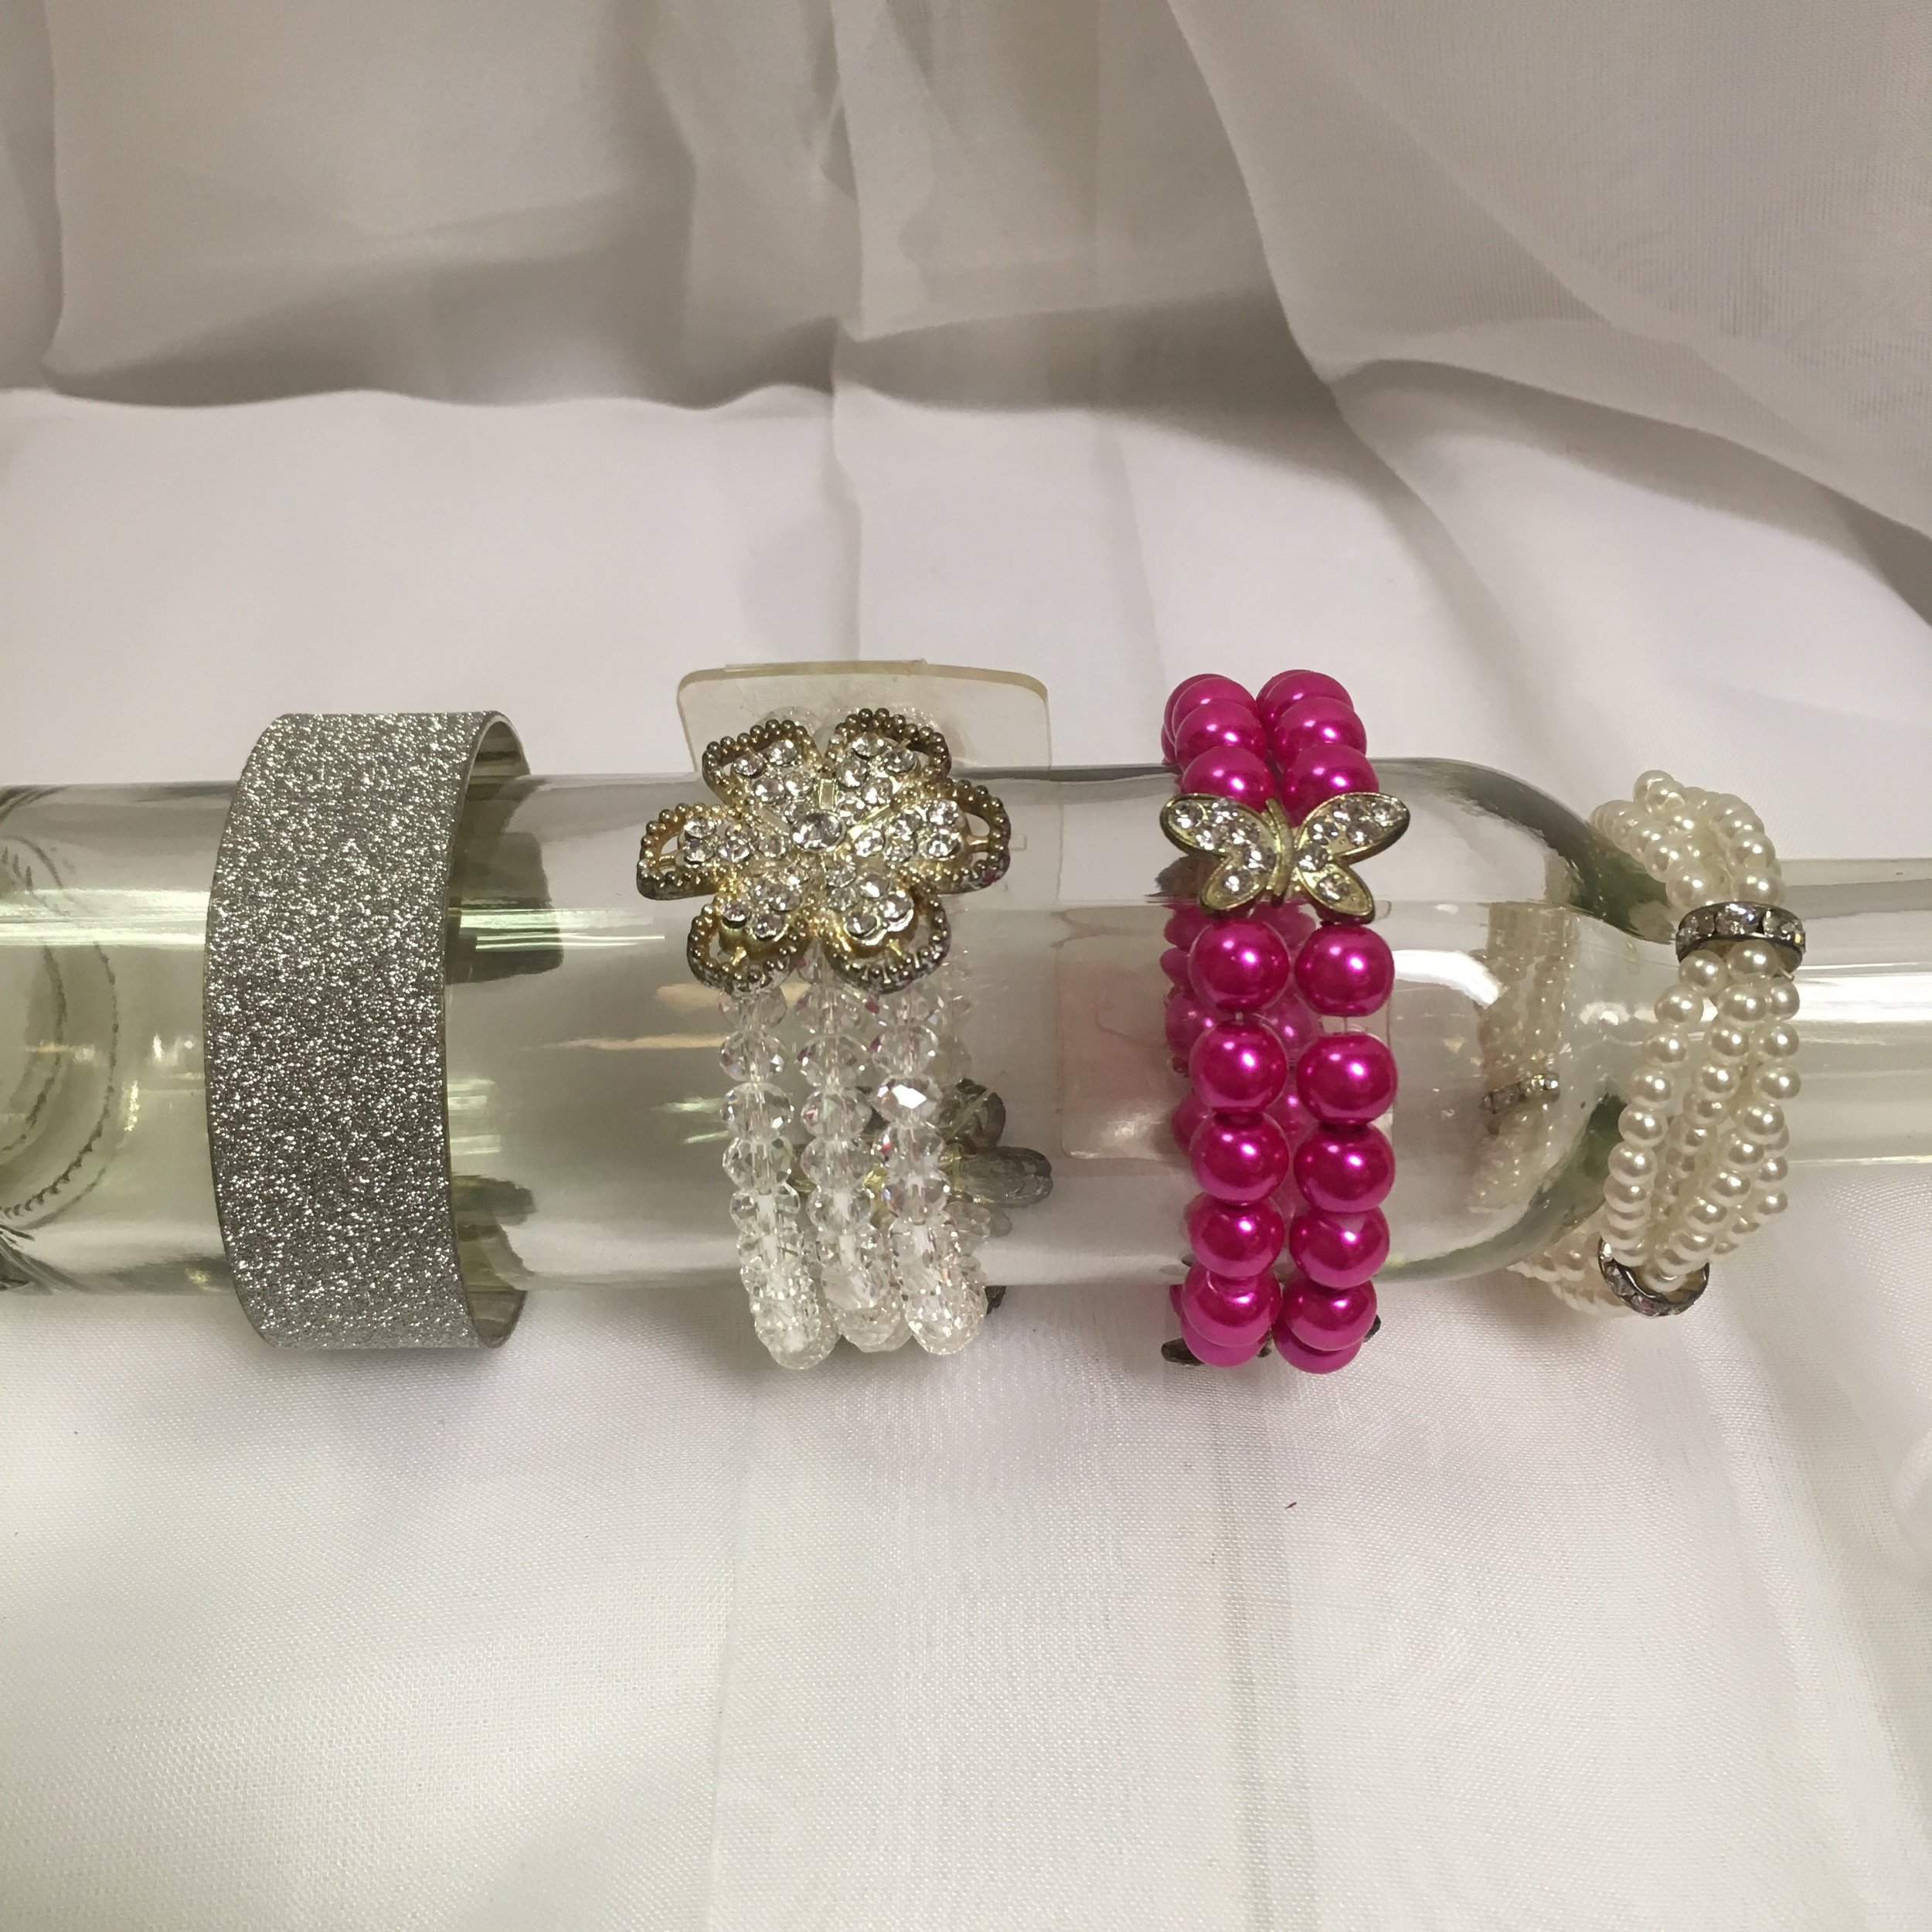 Premium Bracelets: Silver Glitter Cuff, Iridescent Beads and Rhinestones with flower, Hot Pink Beads with butterfly, Pearls and Rhinestones